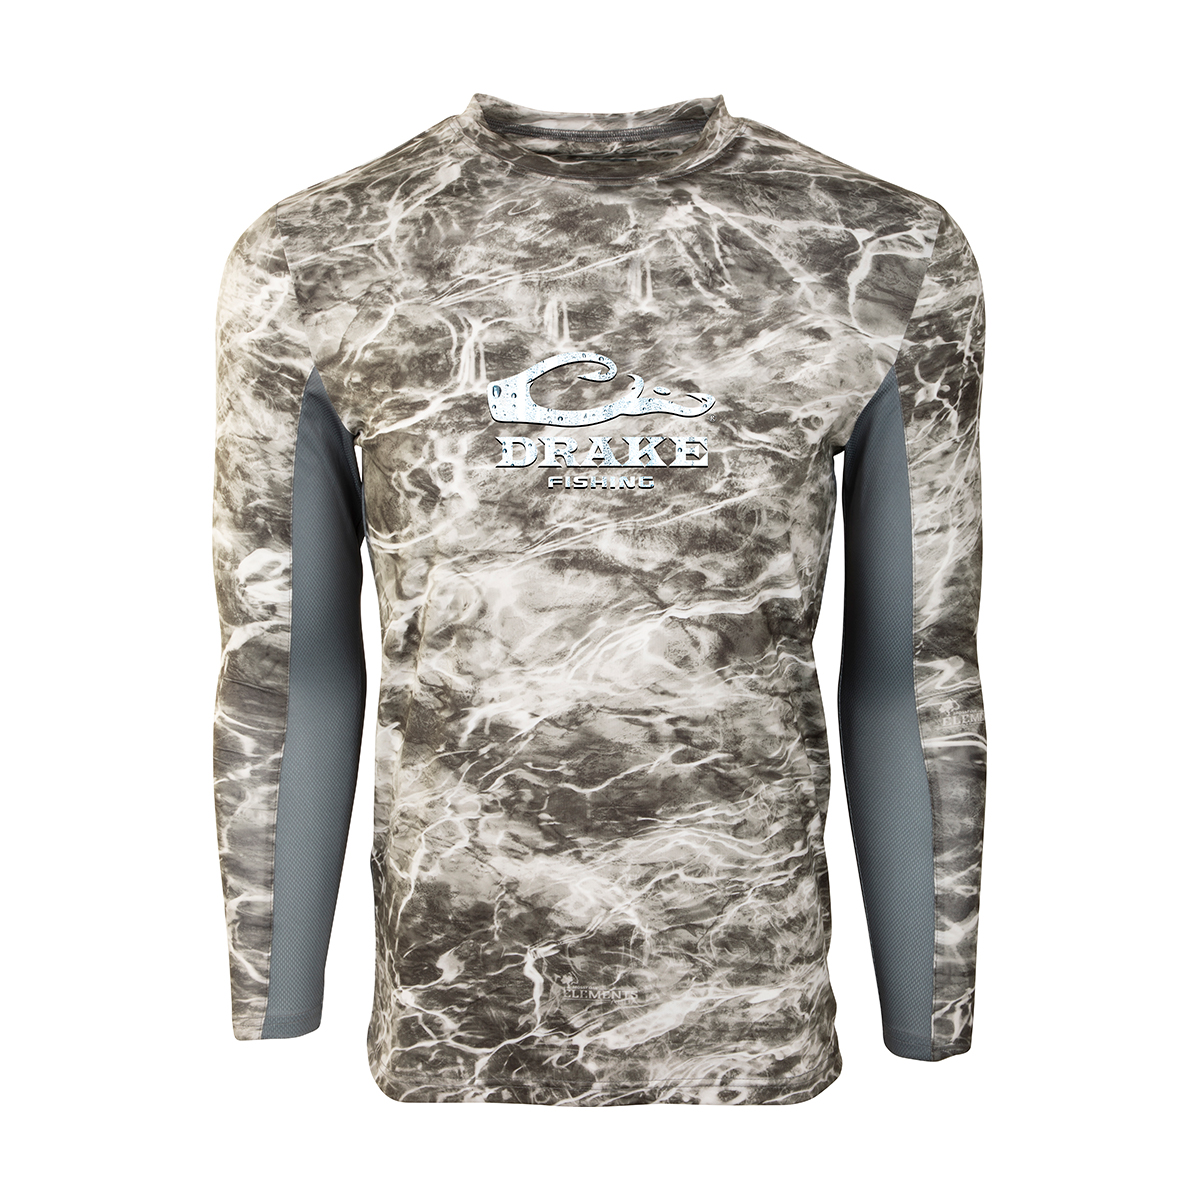 drake-performance-fish-big-tall-mesh-shirt-bigcamo-elements-manta